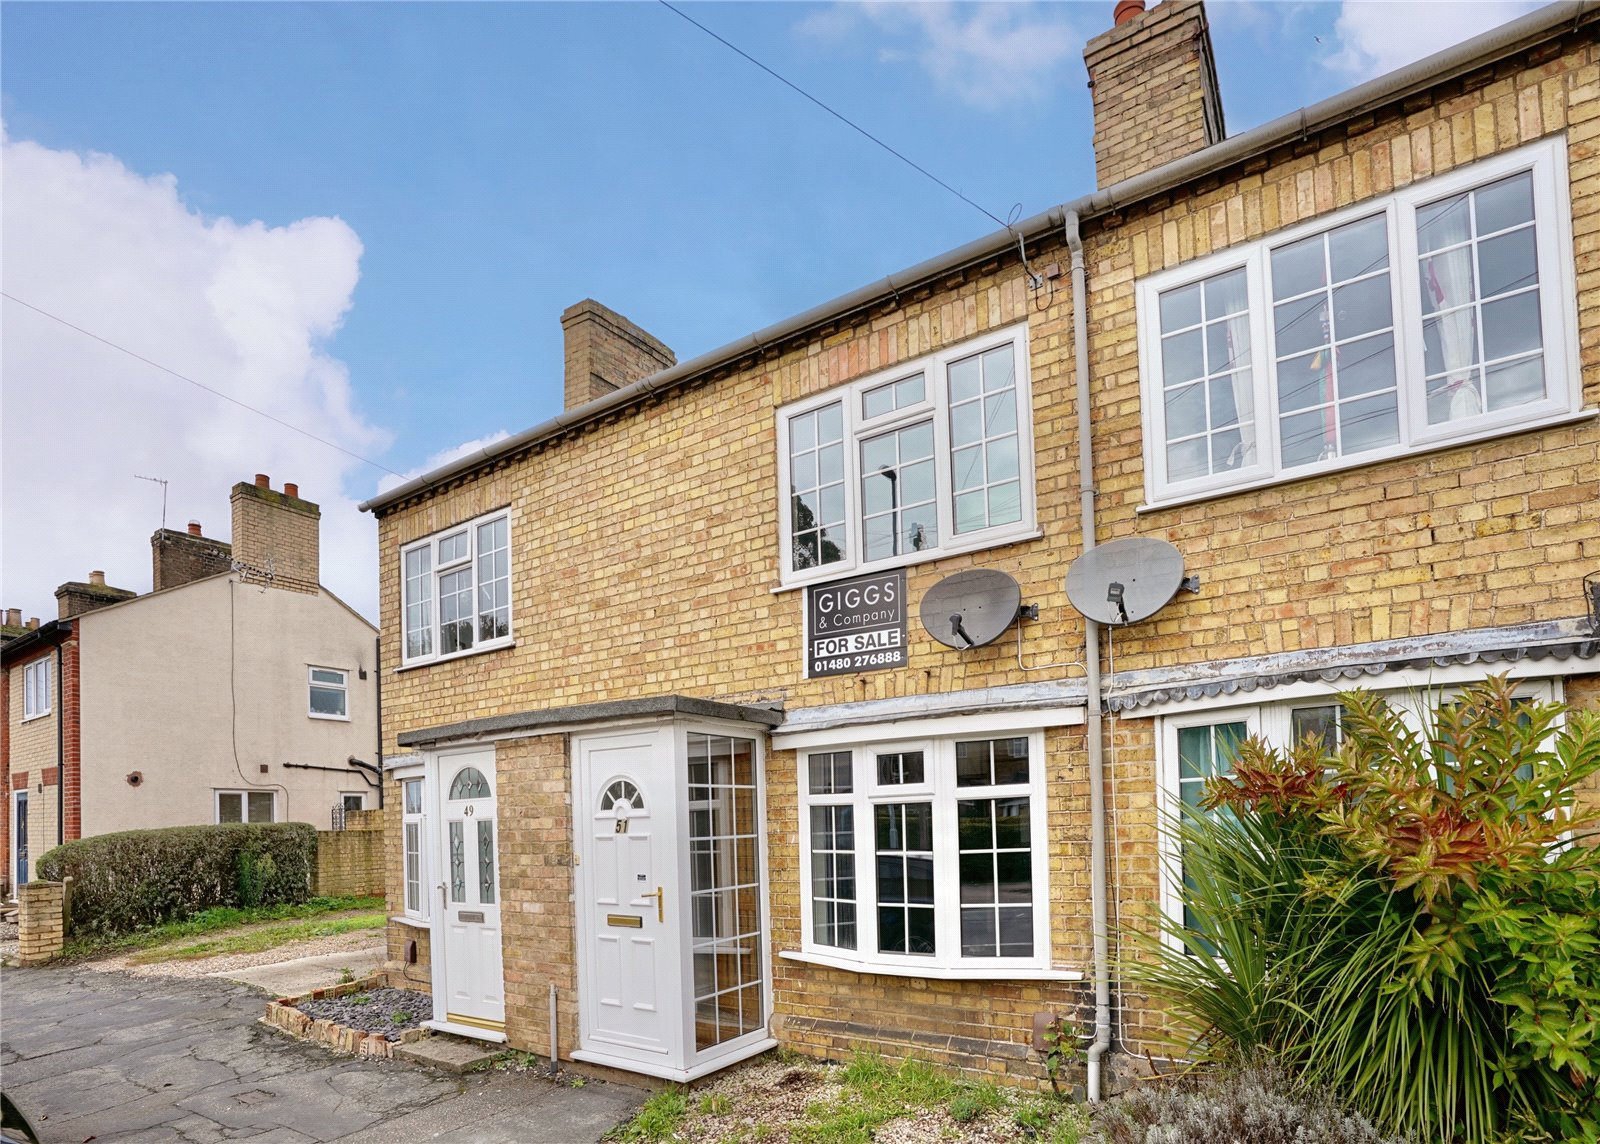 2 bed house for sale in Eaton Ford, PE19 7BA 0